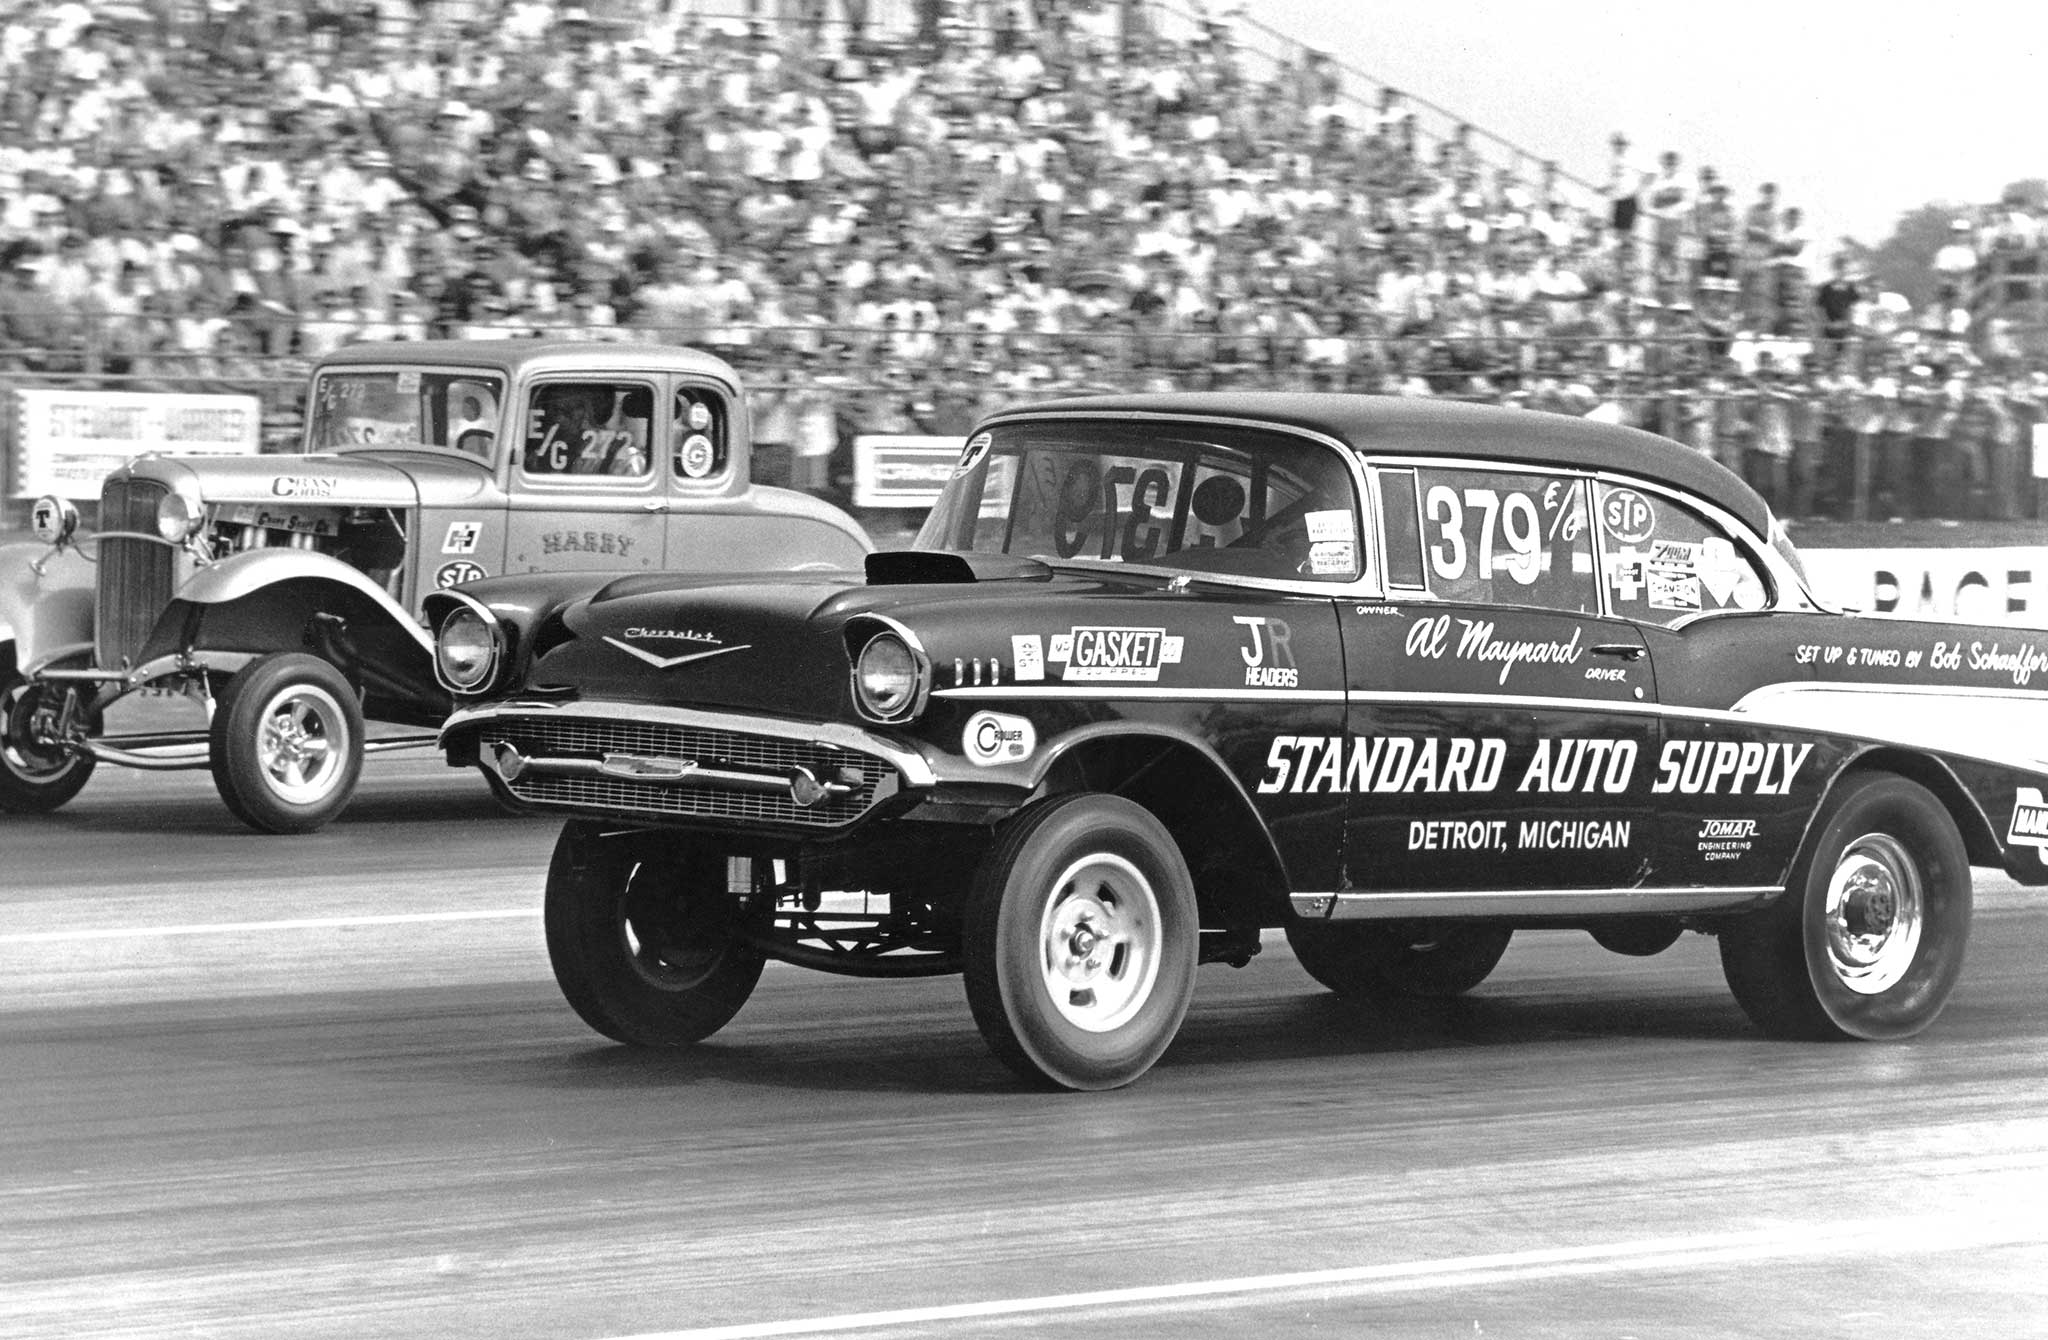 Al Maynard (1957 Chevy) and Harry Luzader (1932 Ford) staged this classic battle for Nationals E/Gas class honors. Despite Maynard's holeshot, Luzader took the win. Both cars featured a Hilborn-injected small-block and a four-speed transmission.